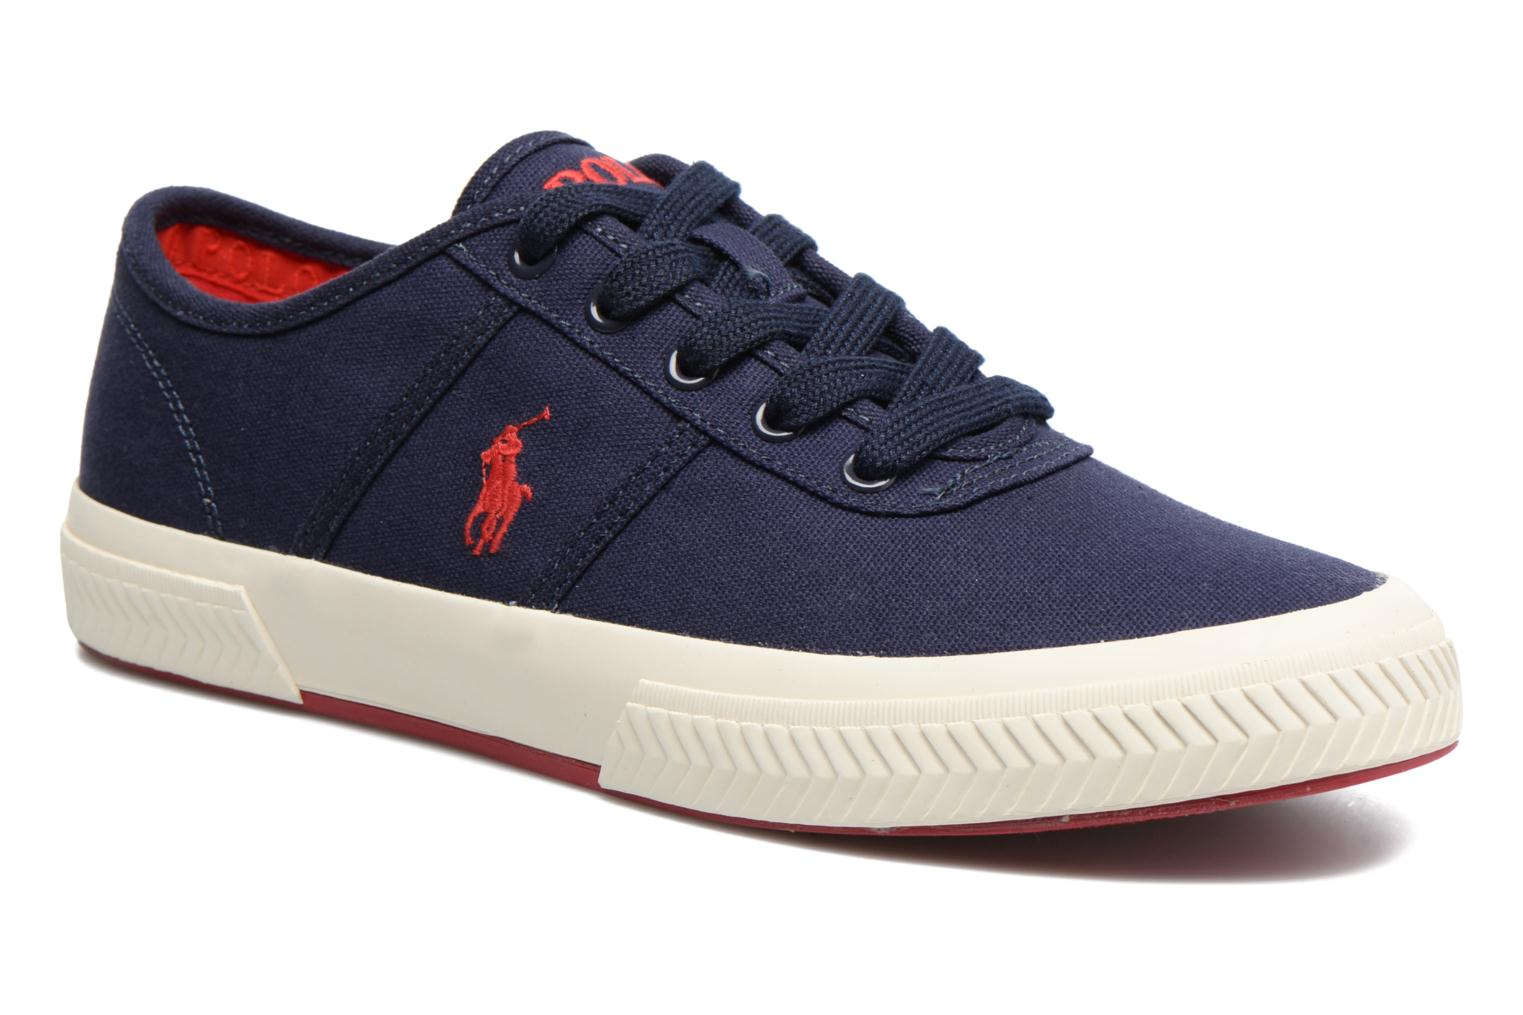 Tyrian-Ne-Sneakers-Vulc by Polo Ralph Lauren